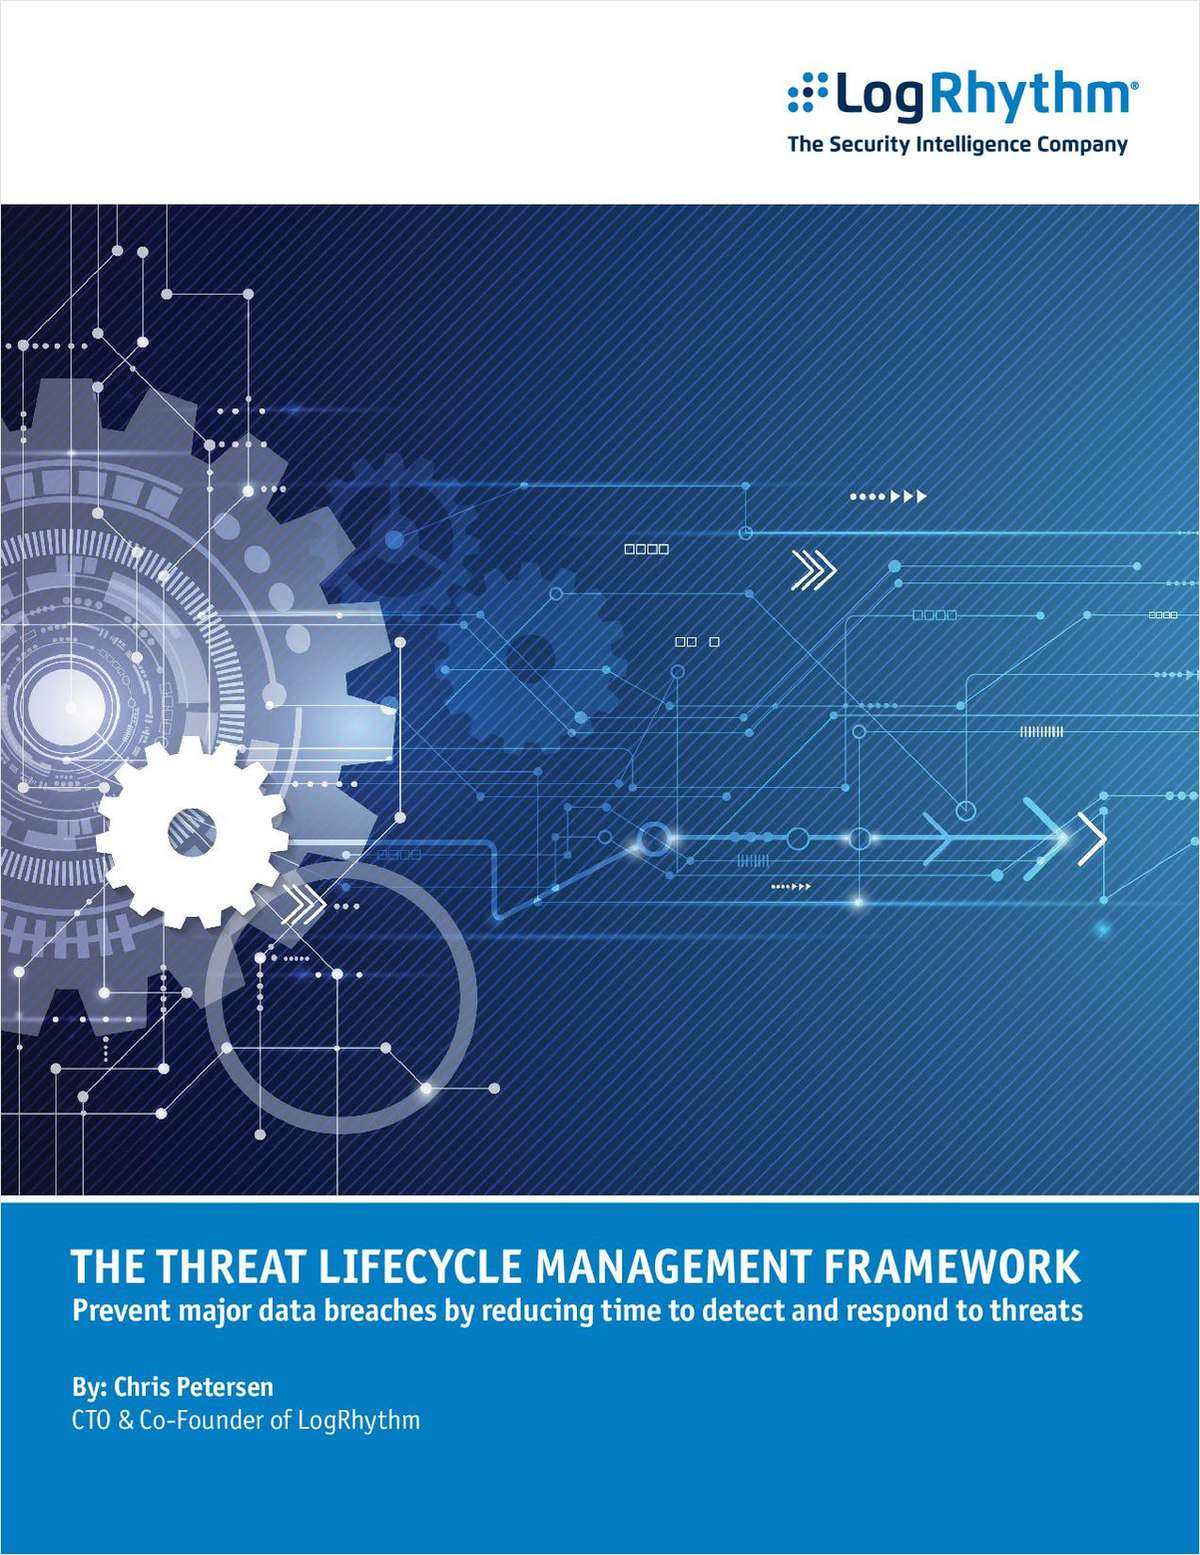 Threat Lifecycle Framework | Prevent Major Data Breaches by Reducing Time to Detect and Respond to Threats